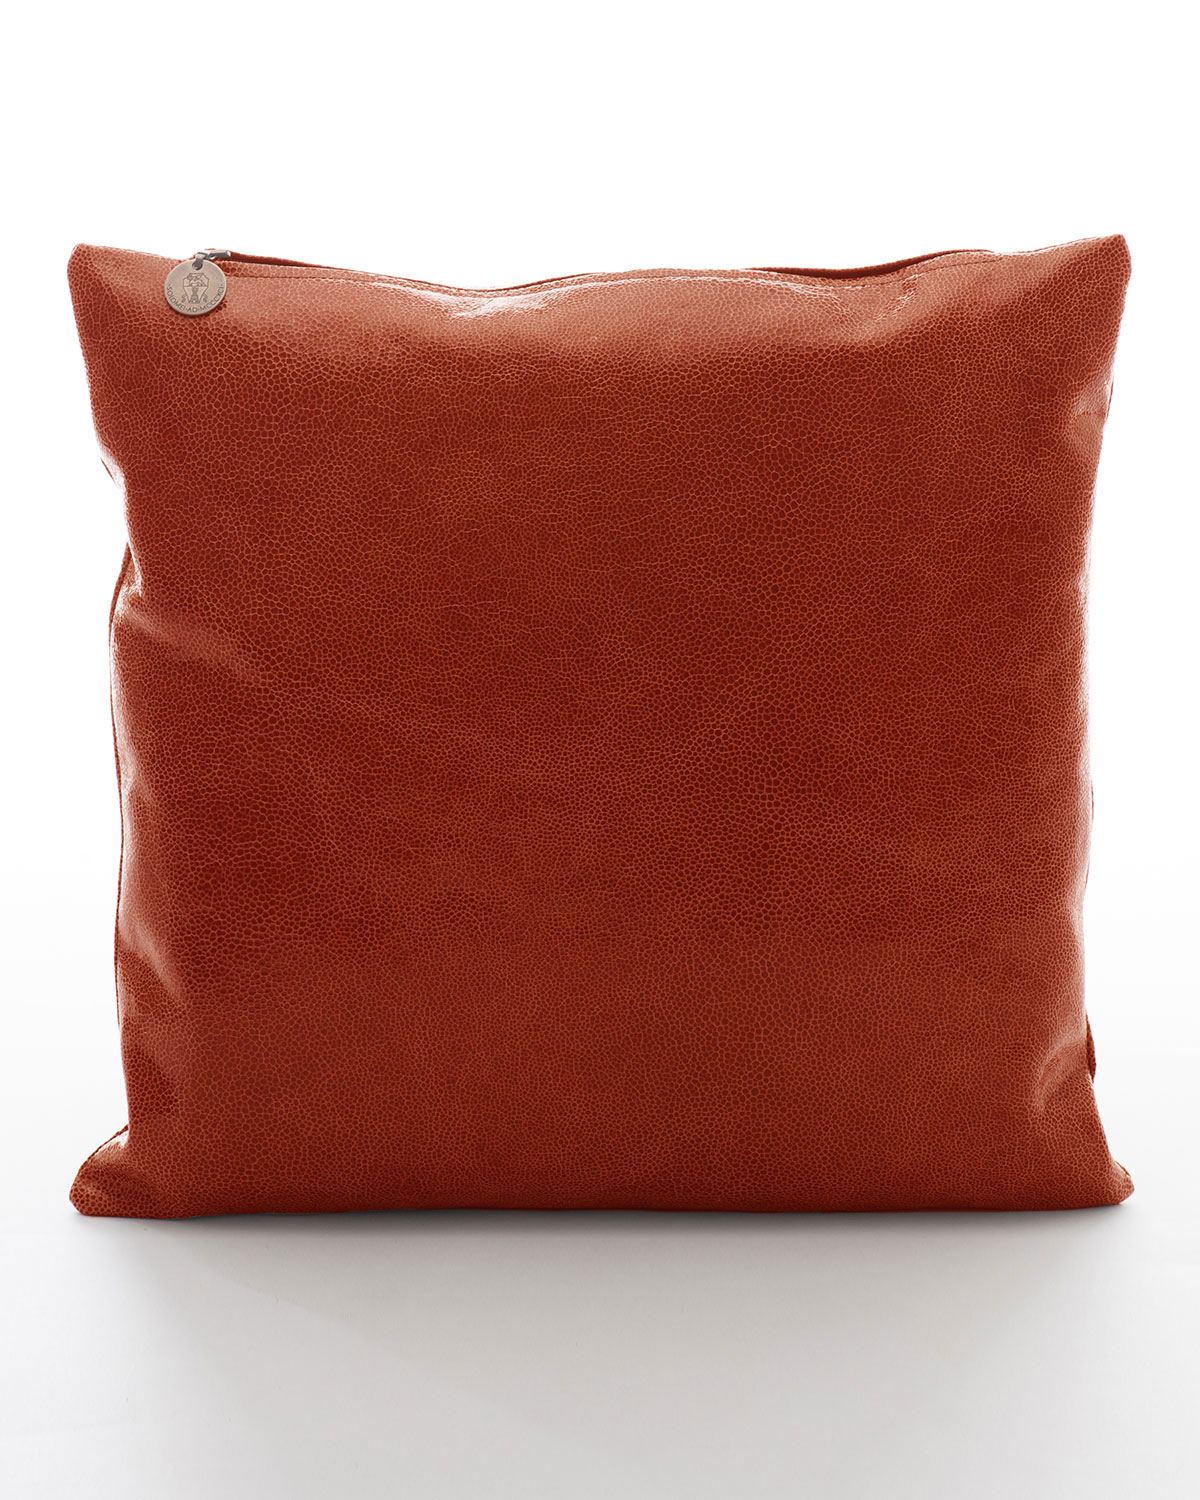 Crackled Leather Pillow, Ginger   Brunello Cucinelli